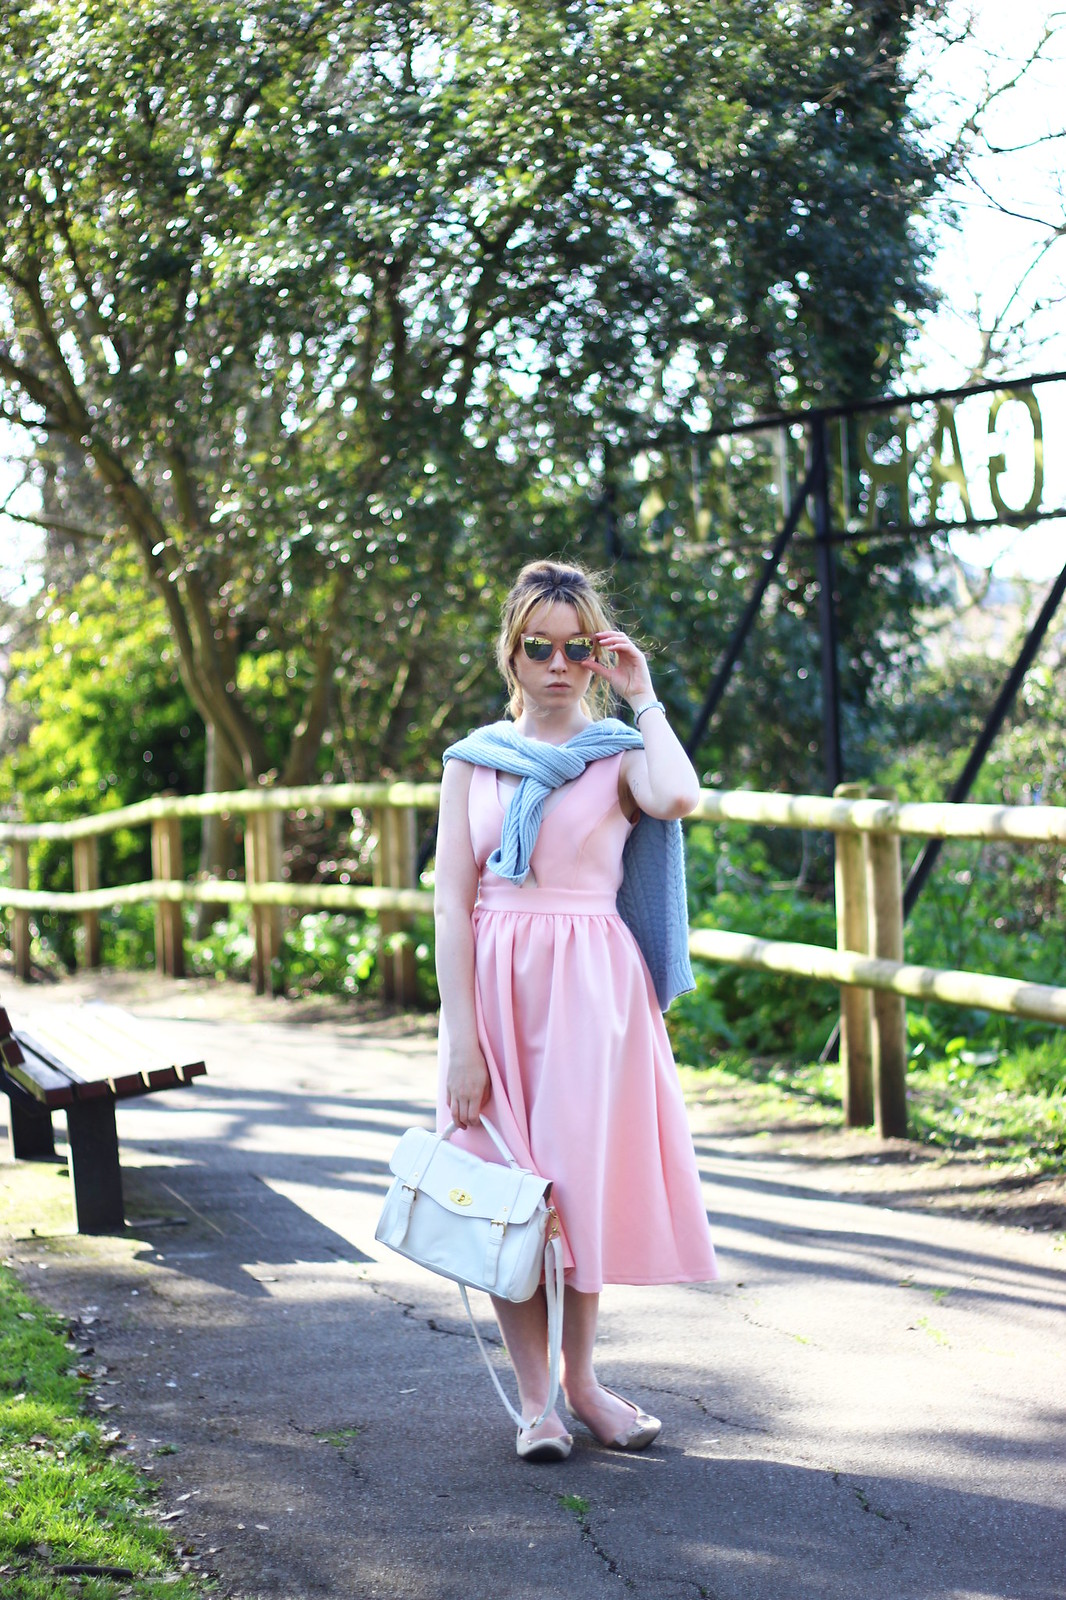 4pasteloutfit, pastel, asos, pink, blue, spring, summer, 2014, trend, fashion, style, retro, cat-eye sunglasses, knitwear, 50's, vintage, inspired, high street, personal style, stylepeaches, blog, outfit, look